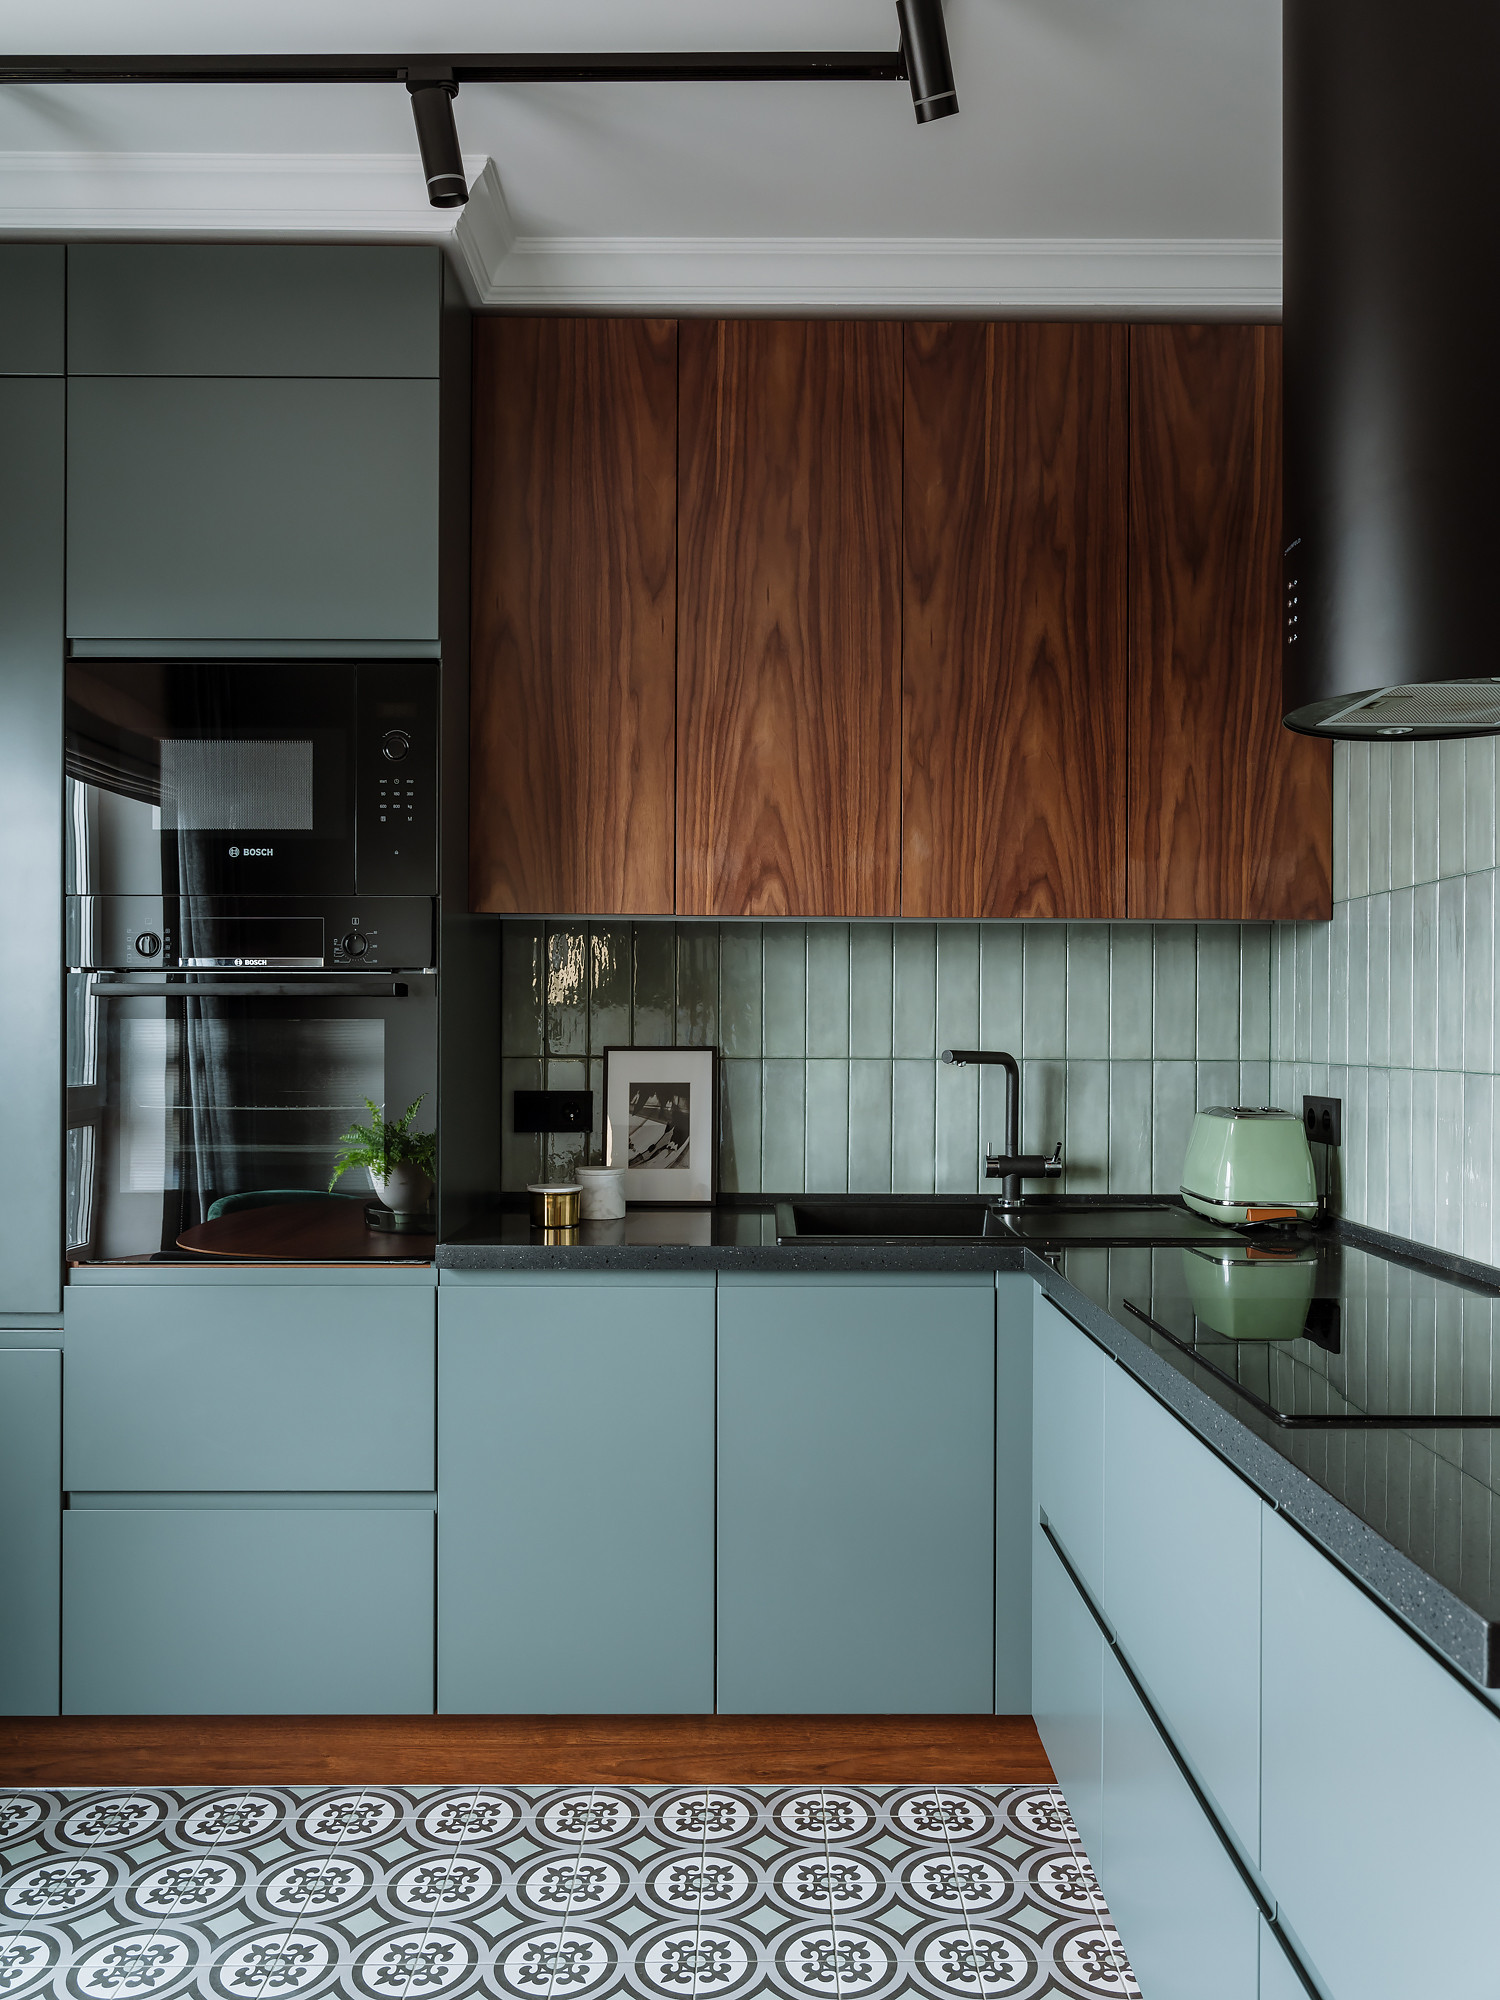 75 Beautiful Kitchen With Black Appliances Pictures Ideas February 2021 Houzz